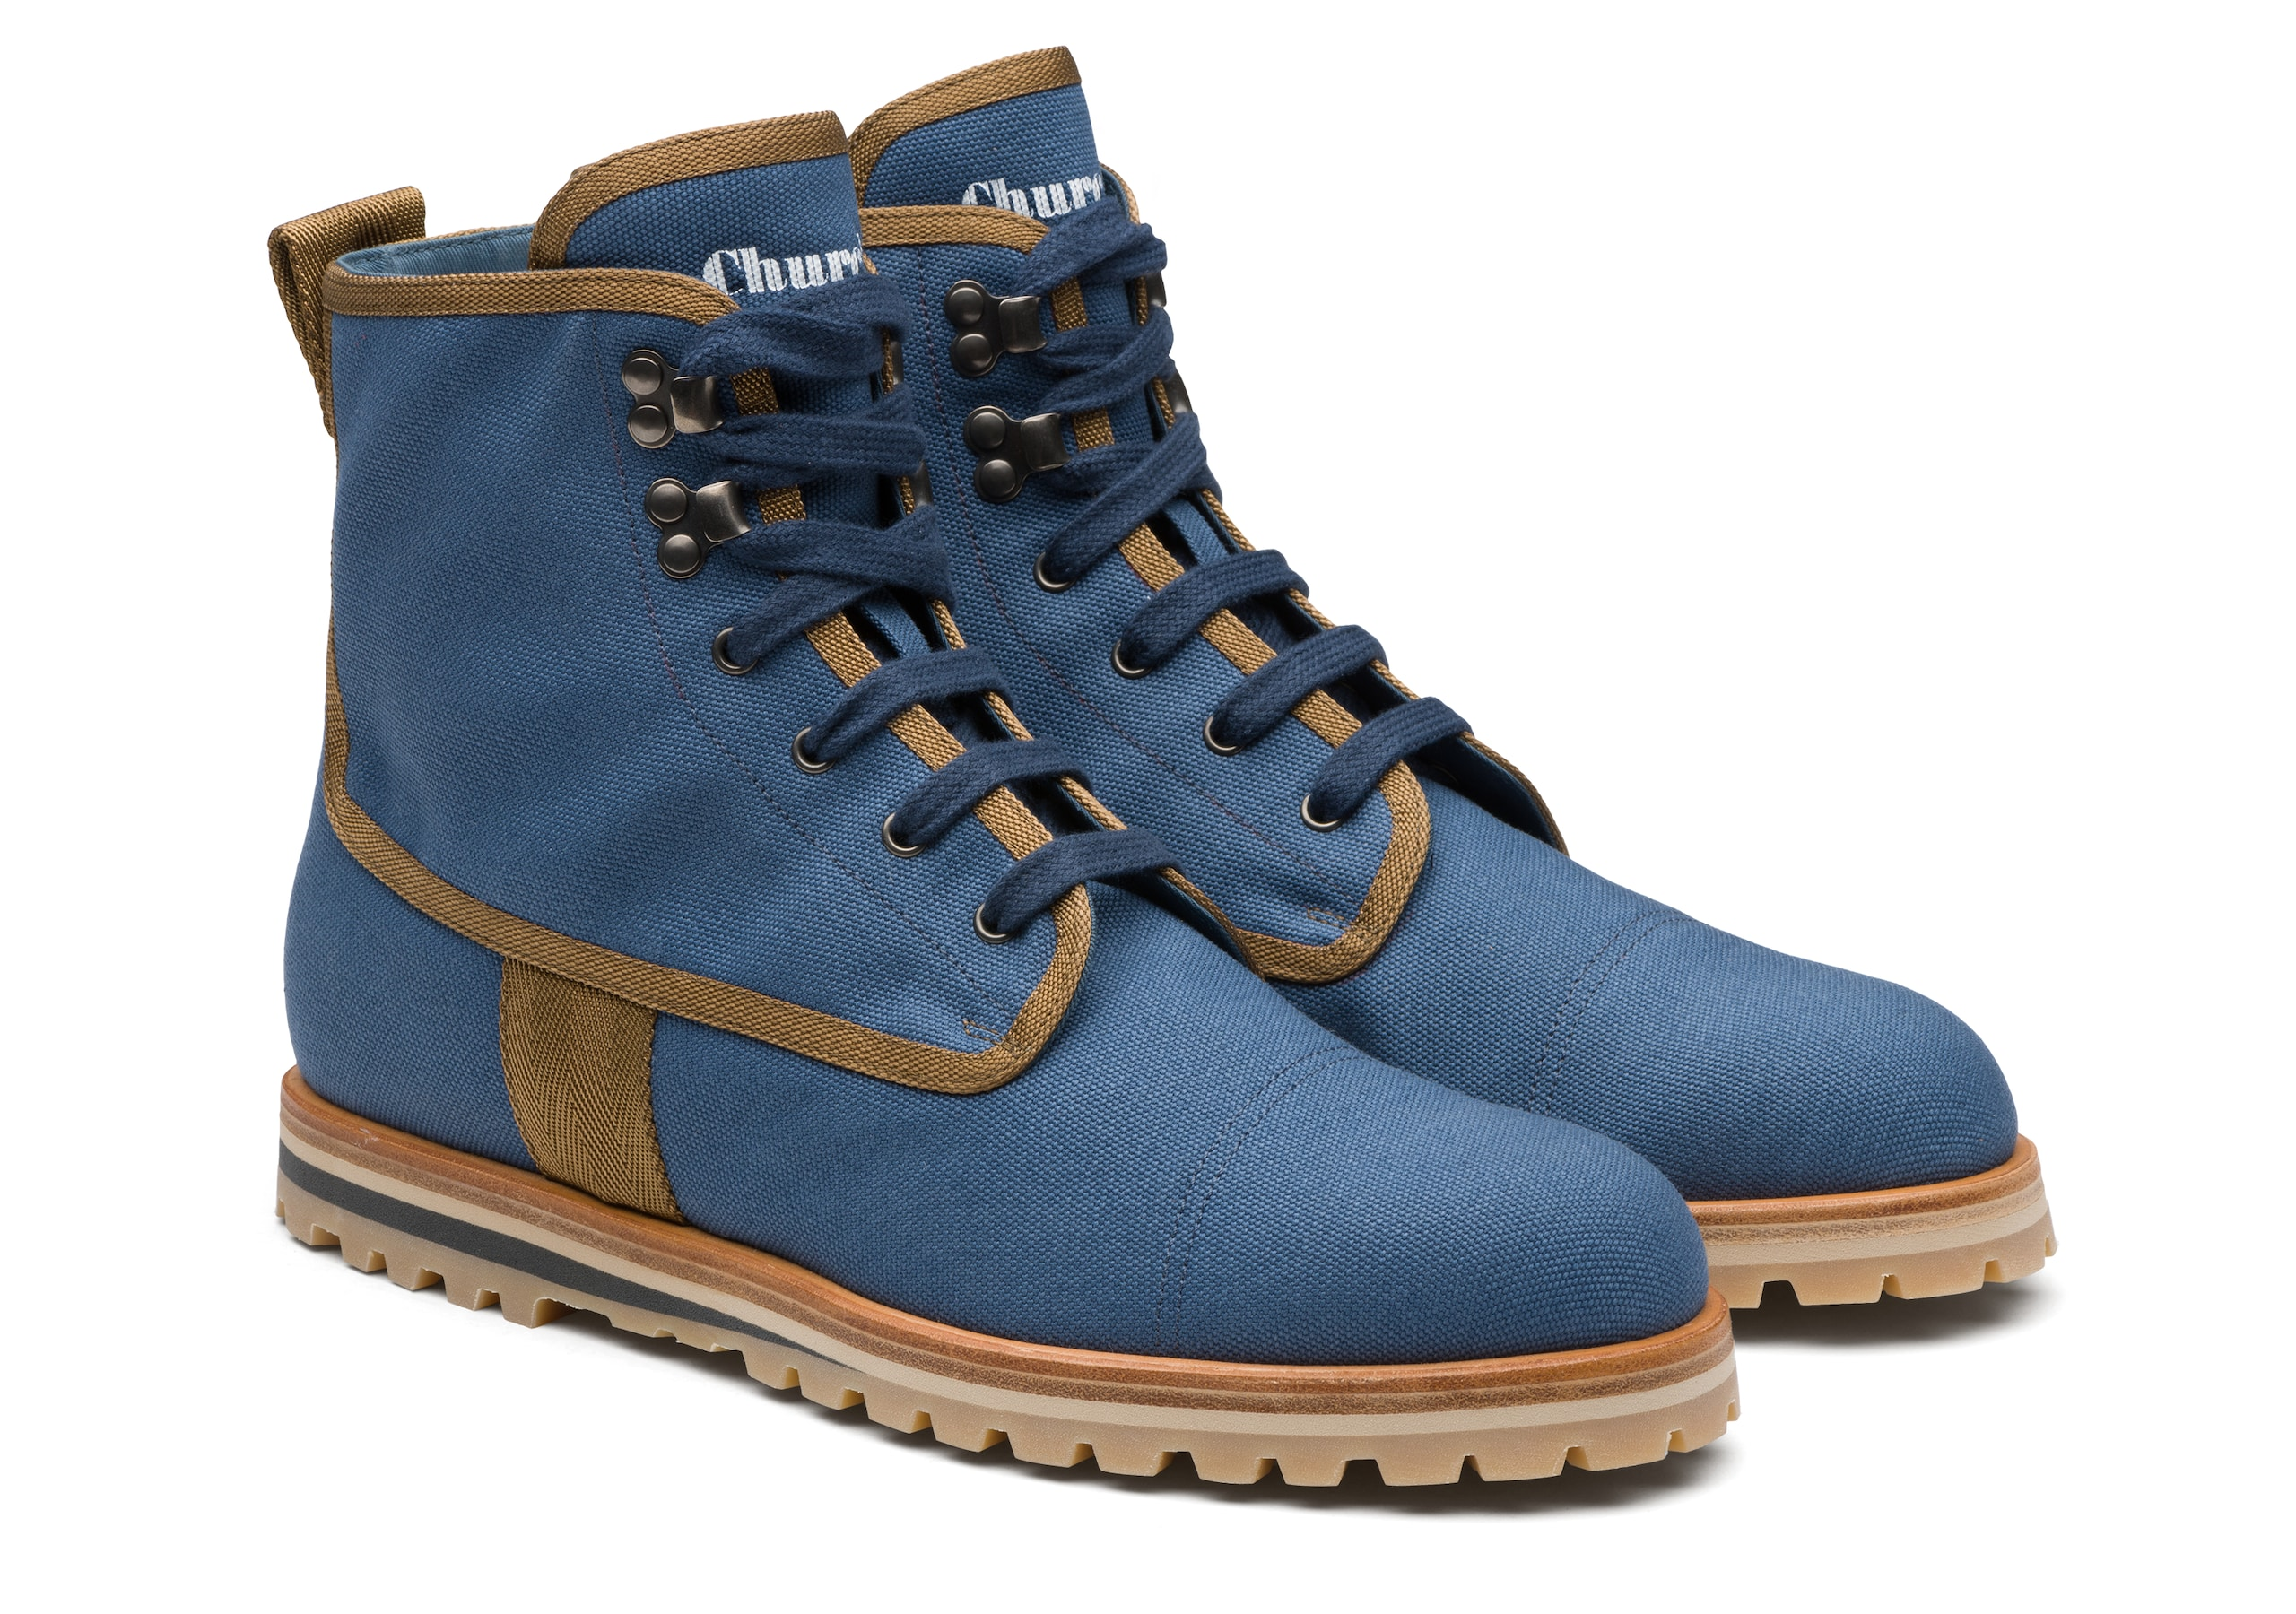 Docklow Church's Canvas Lace-up Boot Blue